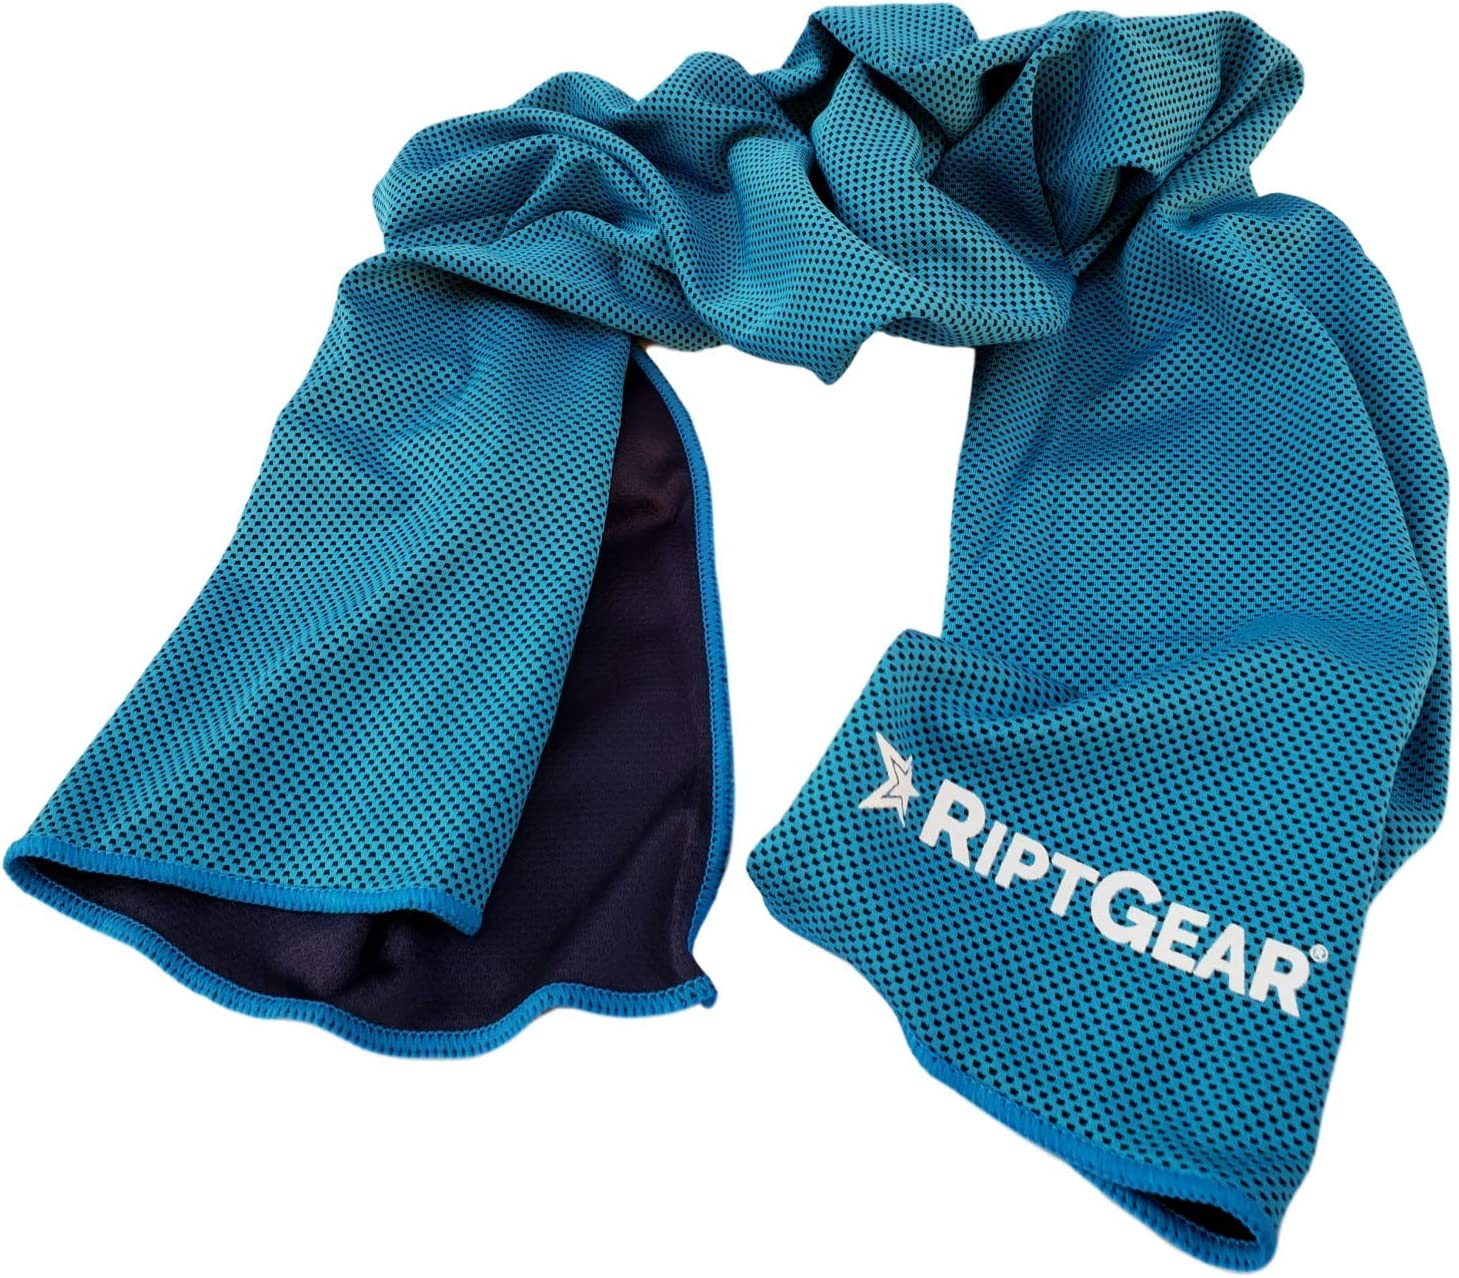 RiptGear Instant Cooling Towel - Ultra Thin Lightweight Design for Fitness and Exercise, Gym, Yoga, Sports, Pilates, Travel, Running and Hiking